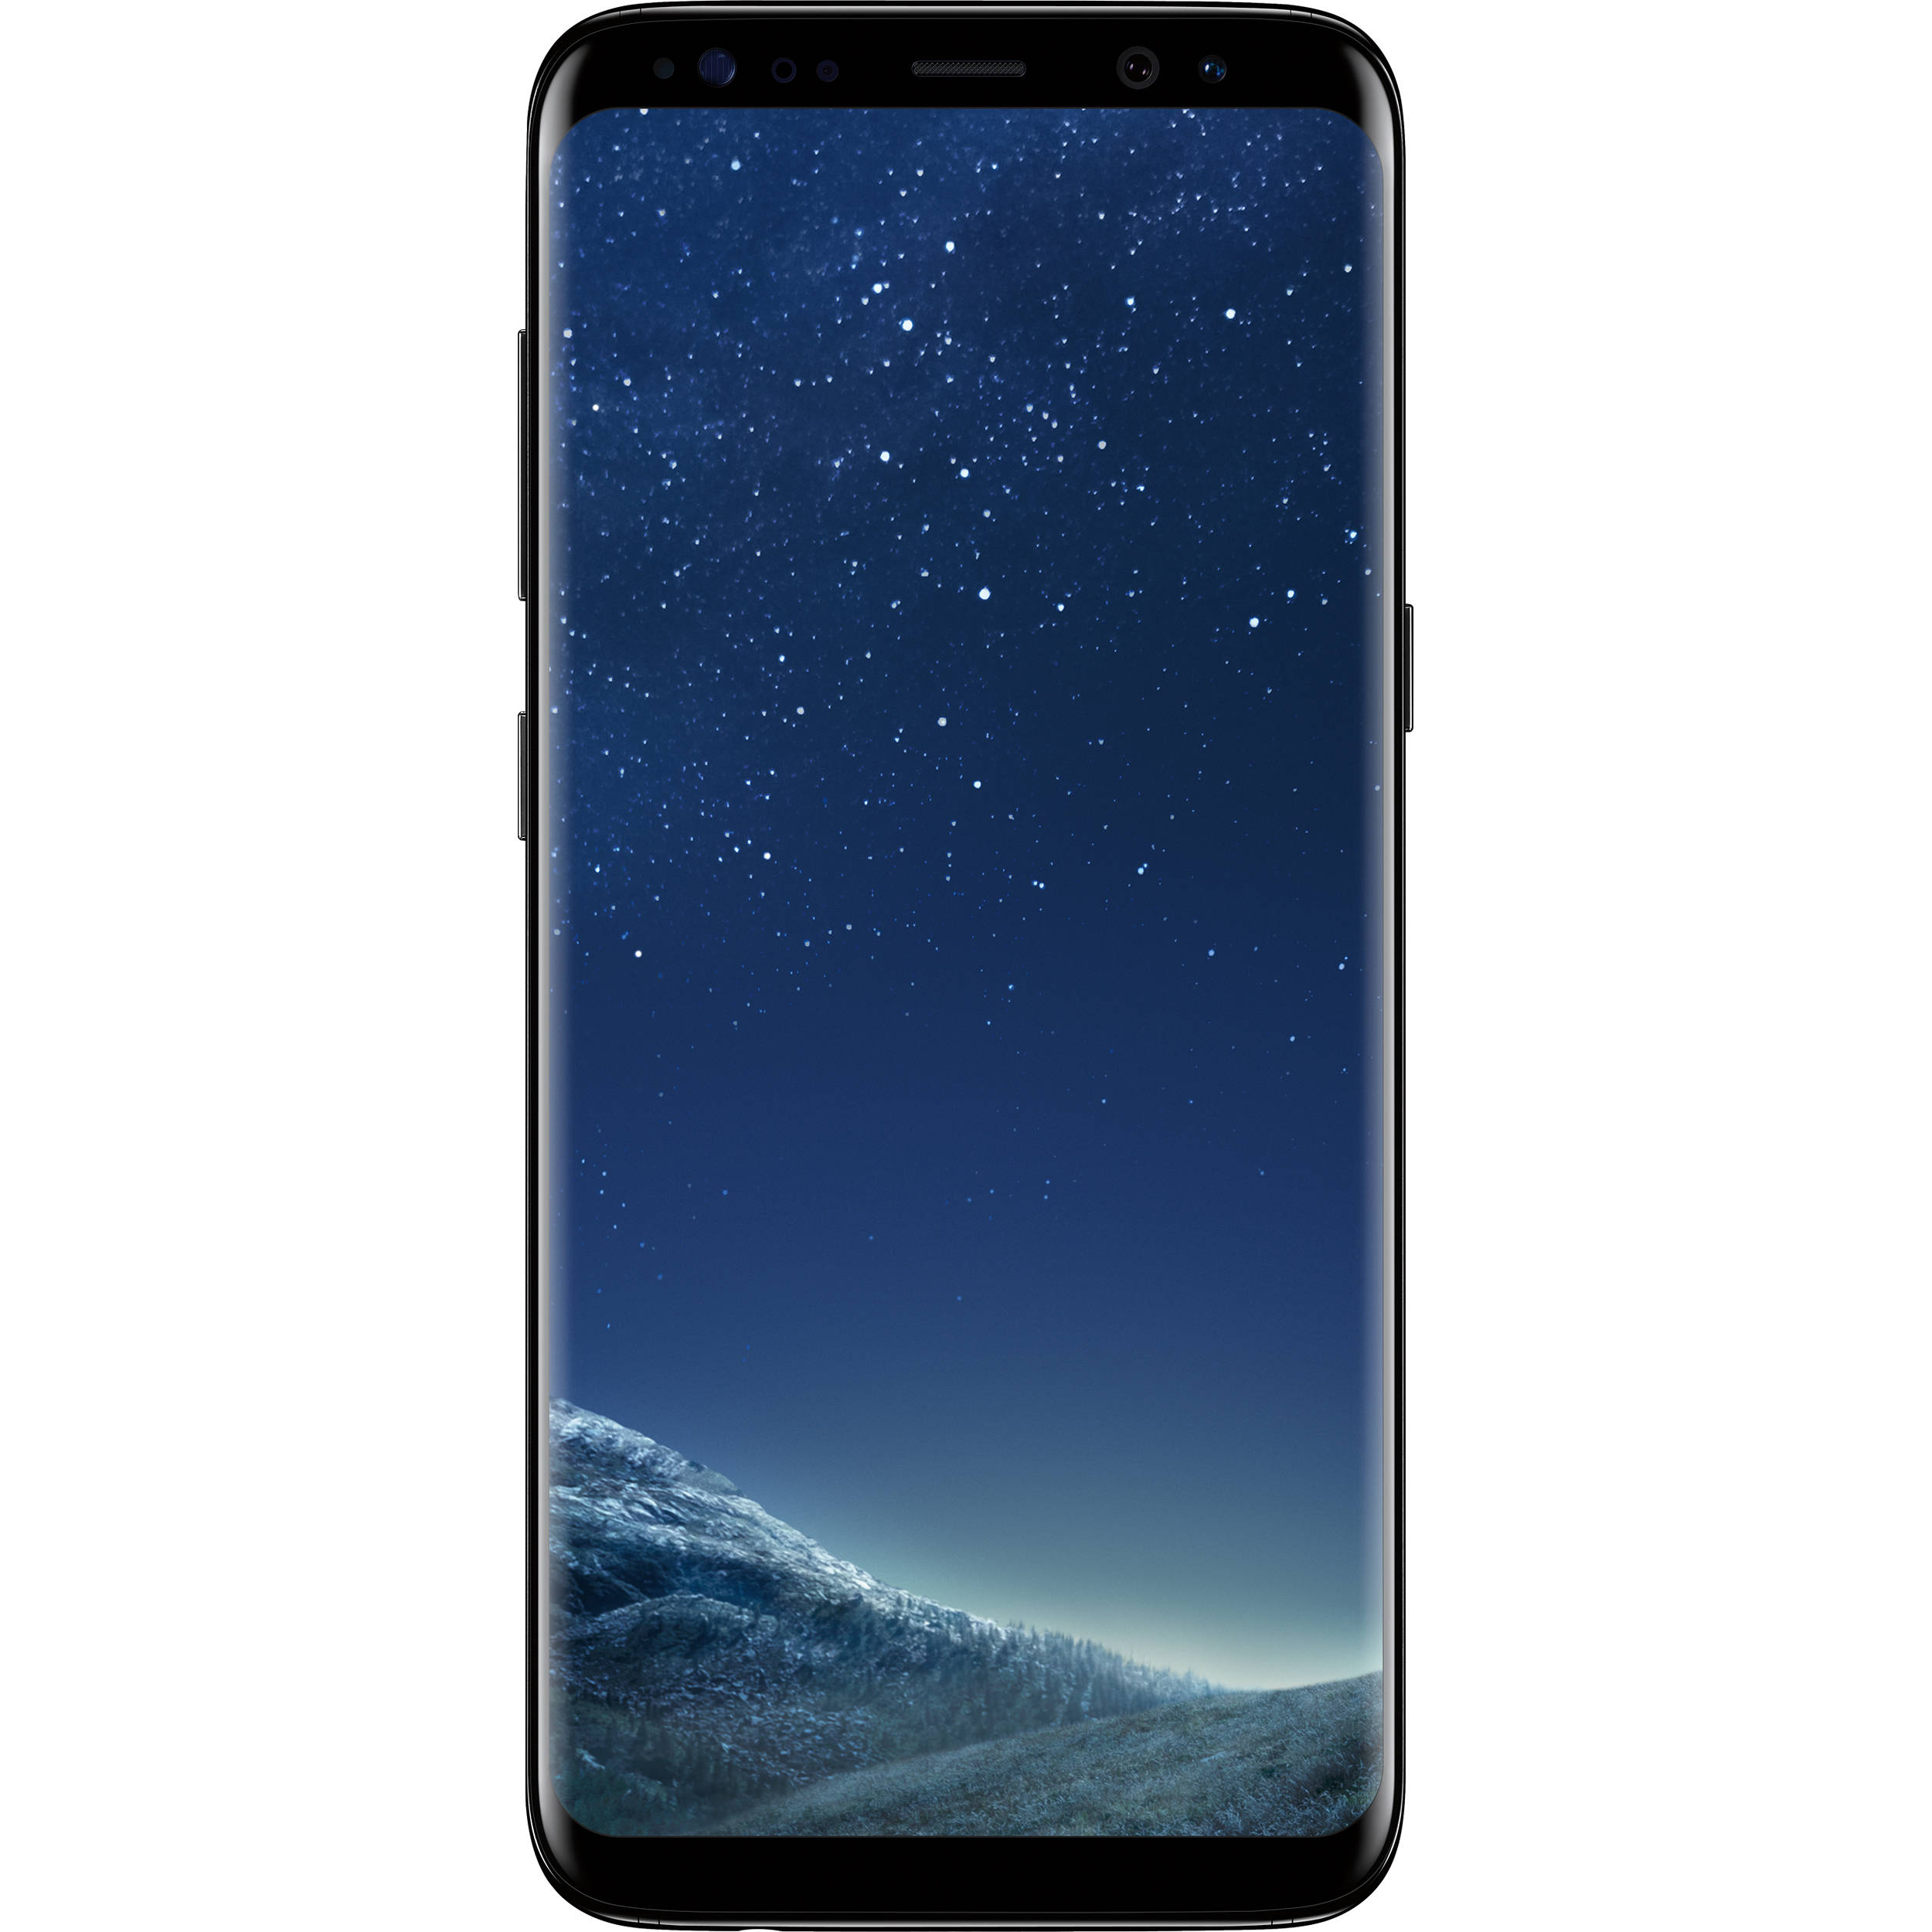 Samsung Galaxy S8 64GB (Unlocked) - Midnight Black